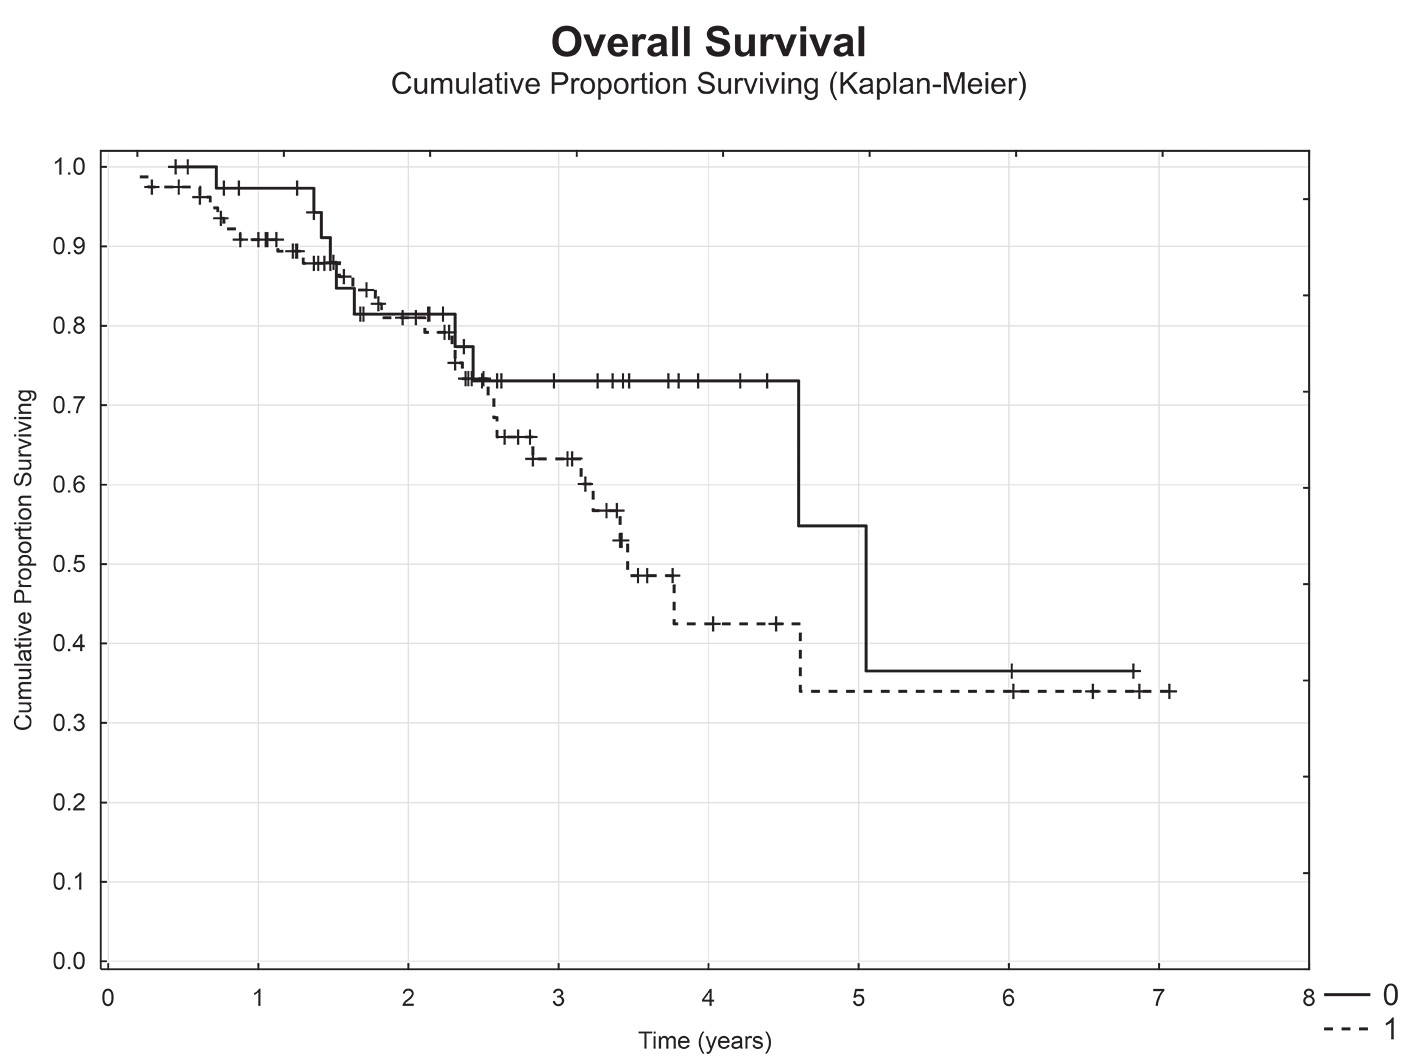 Celkové přežití u pacientů dle výskytu vzdálených metastáz při primární operaci (metachronní (M0) vs.synchronní metastázy (M1))